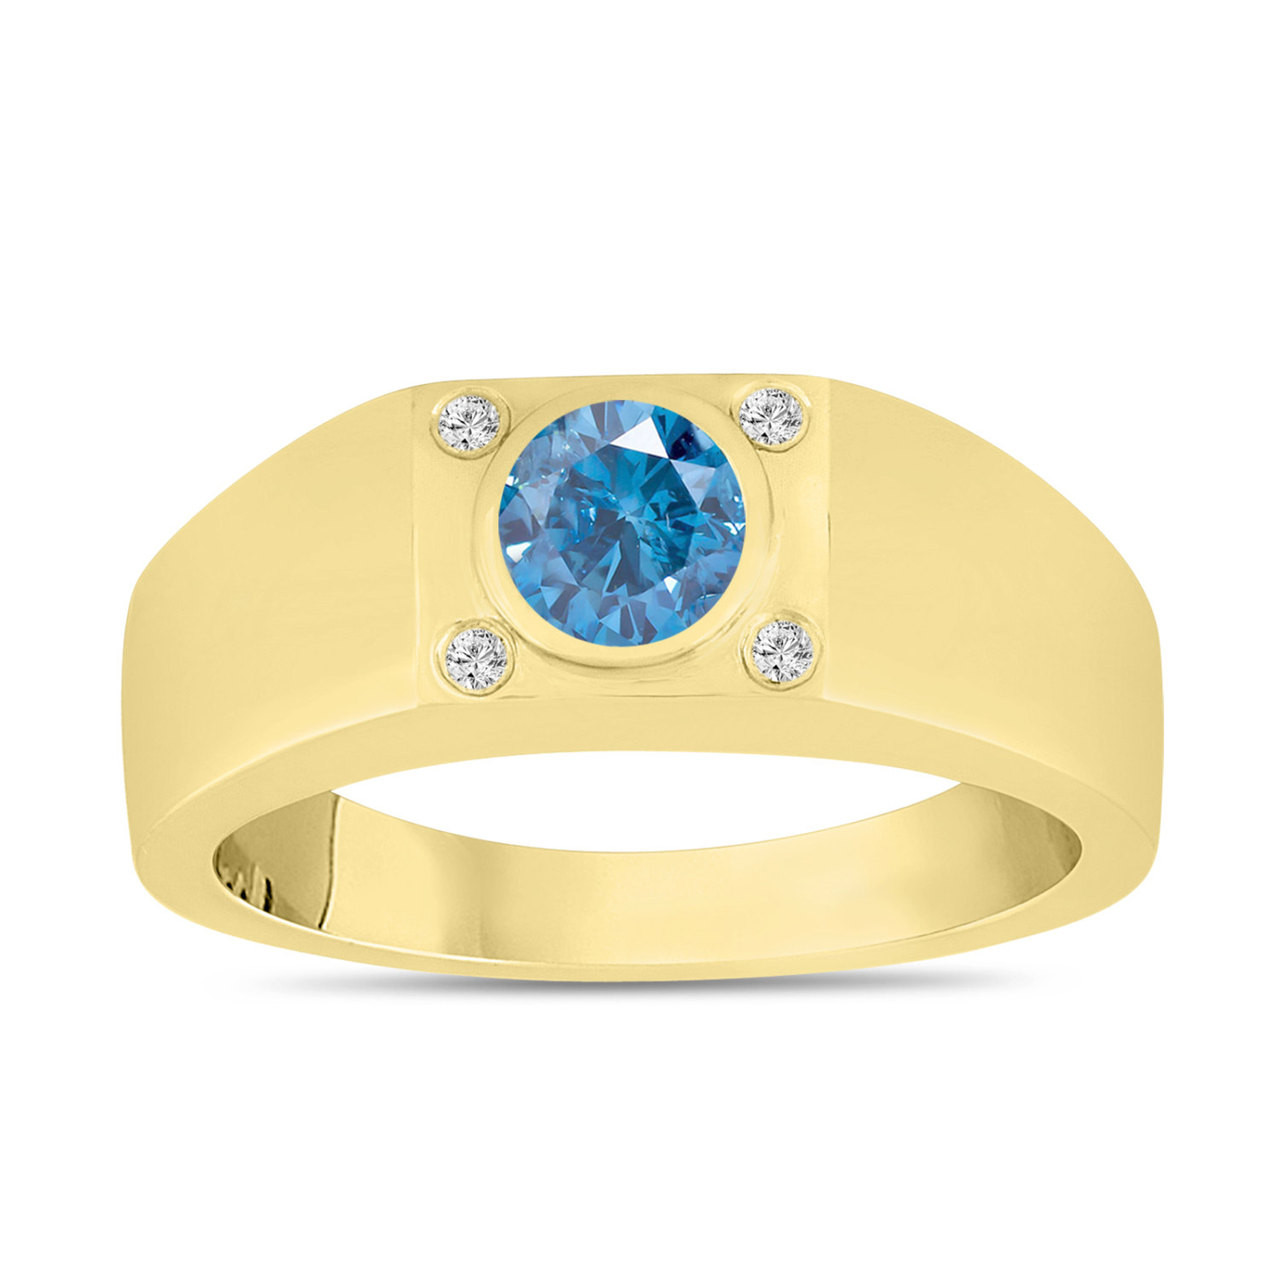 Fancy Blue Diamond Solitaire Mens Ring 14k Yellow Gold 0 55 Carat